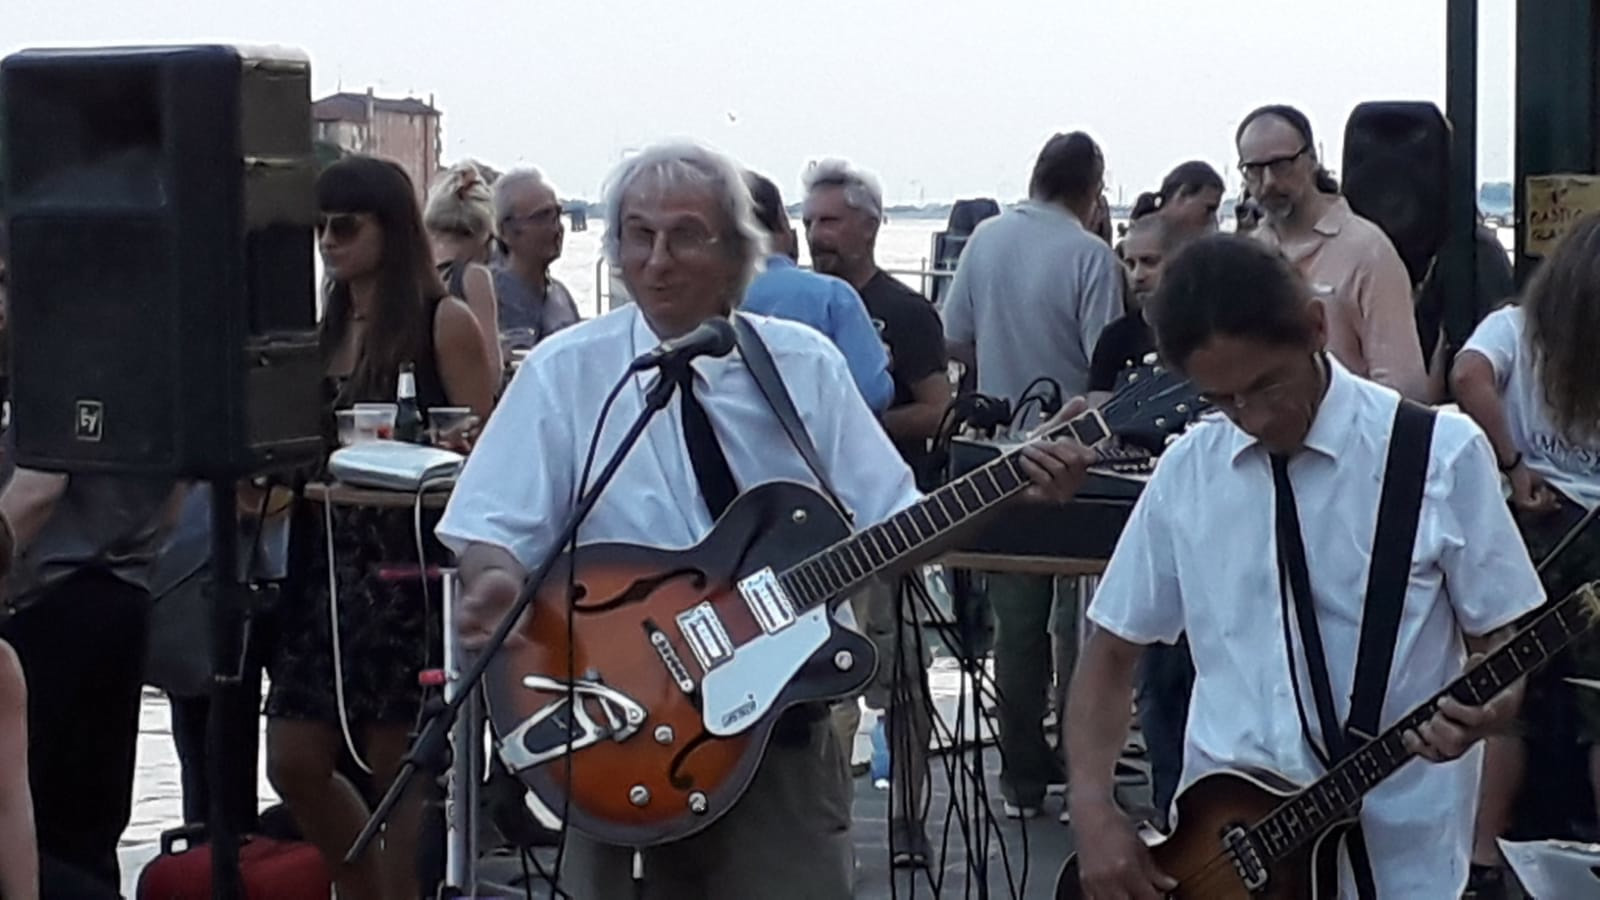 The Bitters @ Chiosco da Tony - Venezia